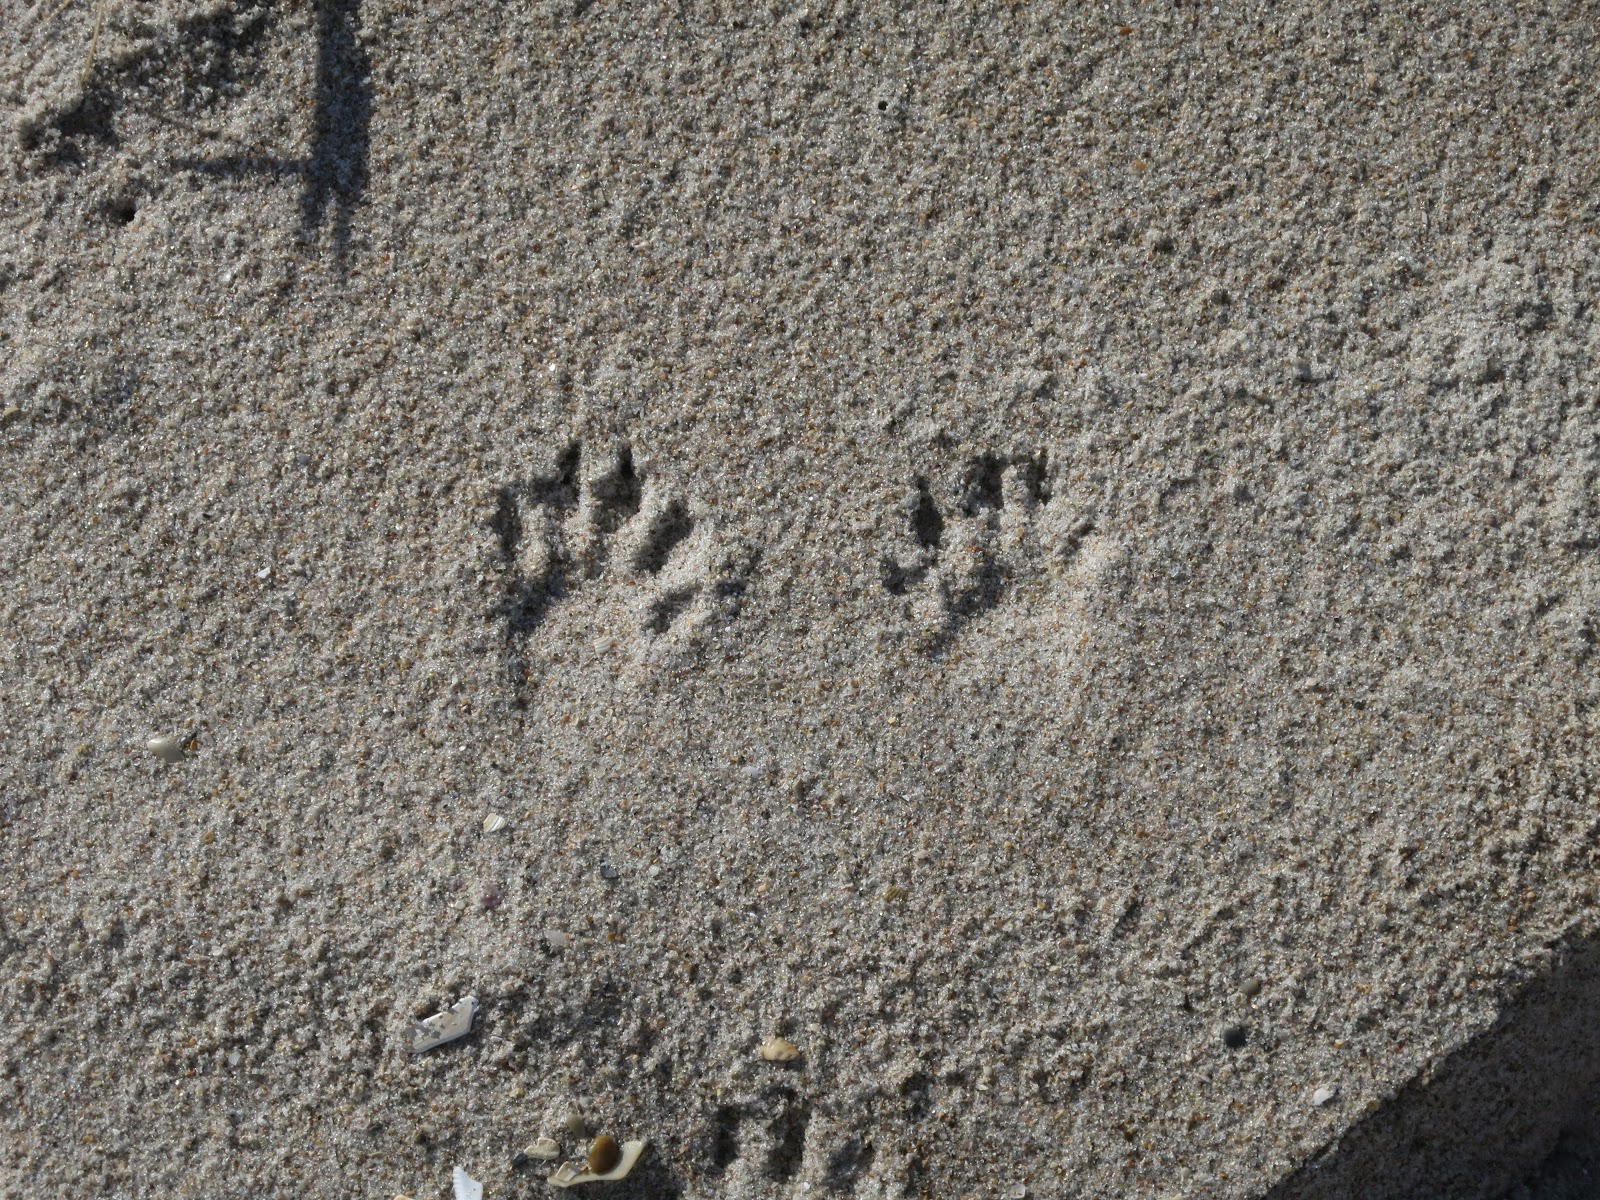 Around The Bend: Leave Only Footprints